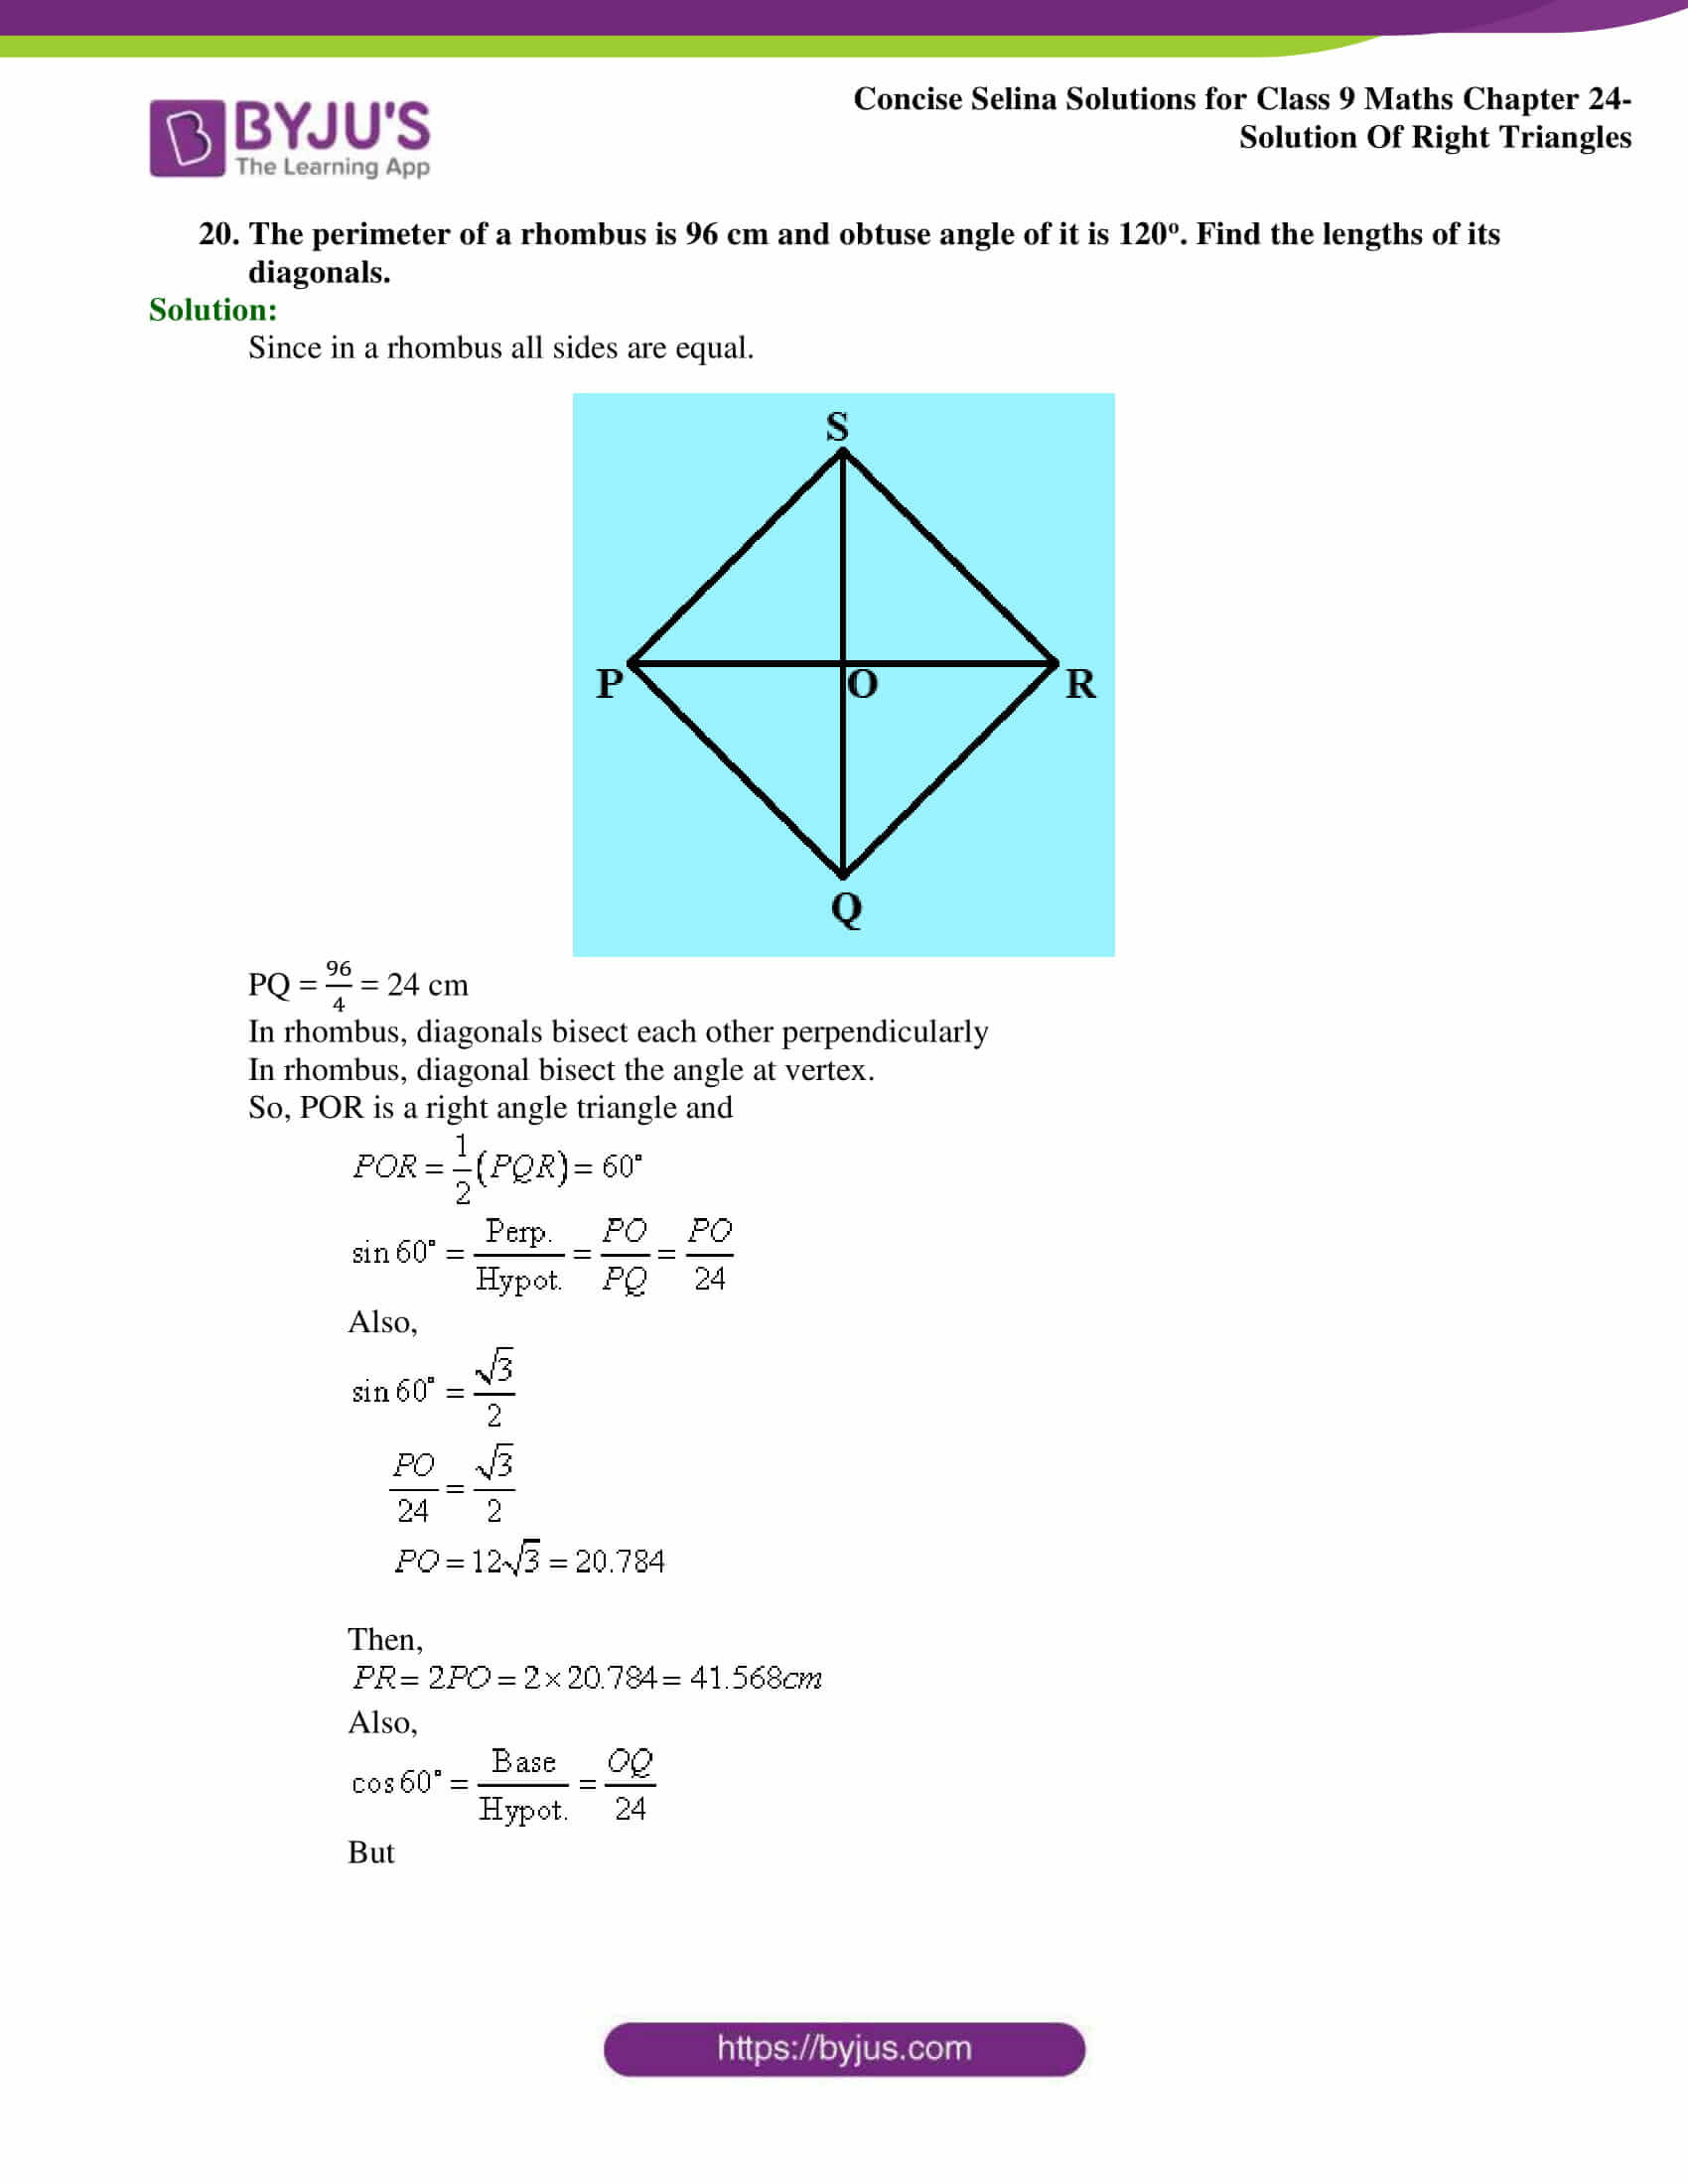 Concise Selina Solutions Class 9 Maths Chapter 24 Solution Of Right Triangles part 23